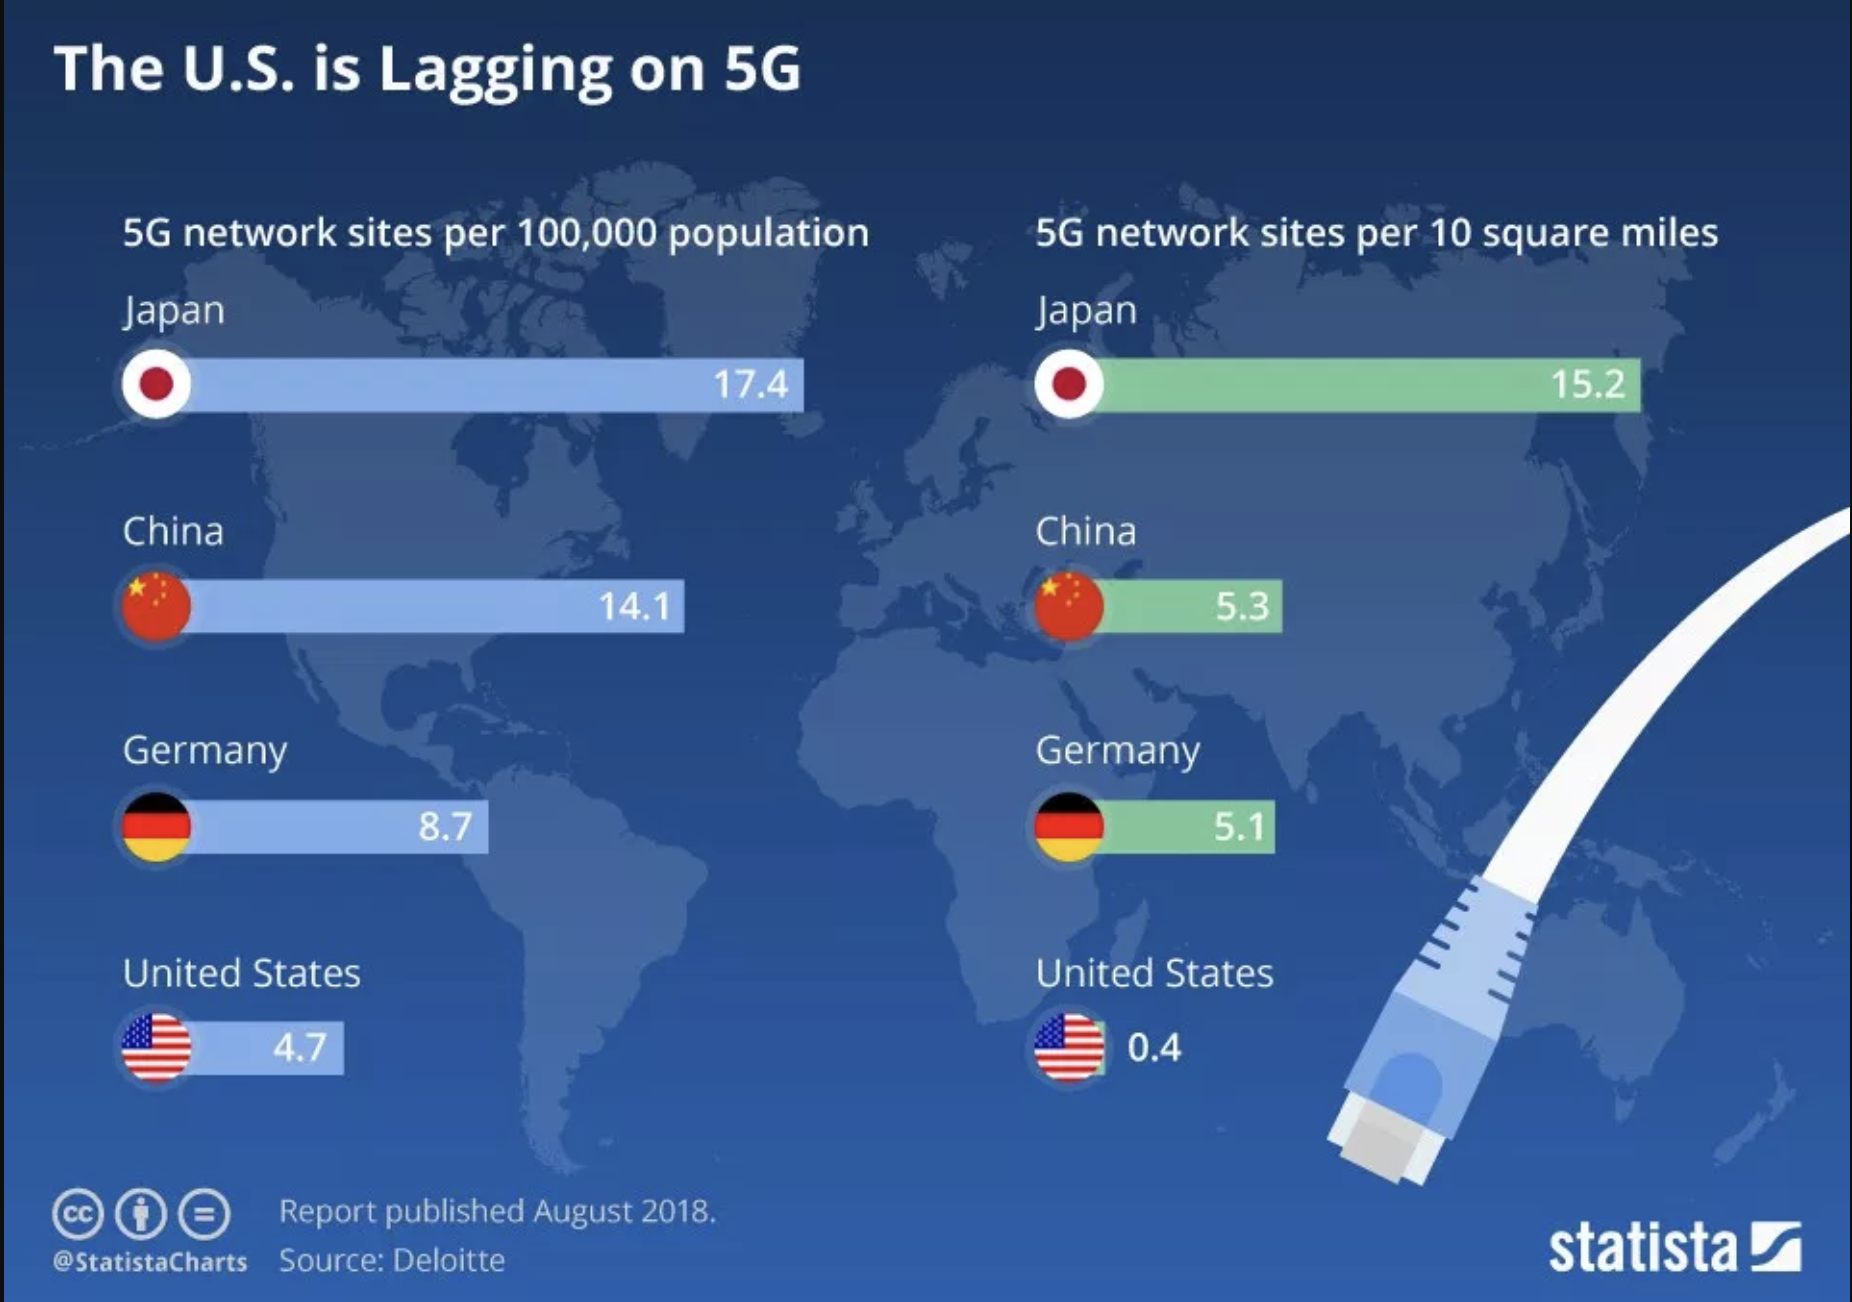 The 5G rollout is well and turly underway - albeit much further along in the Far East